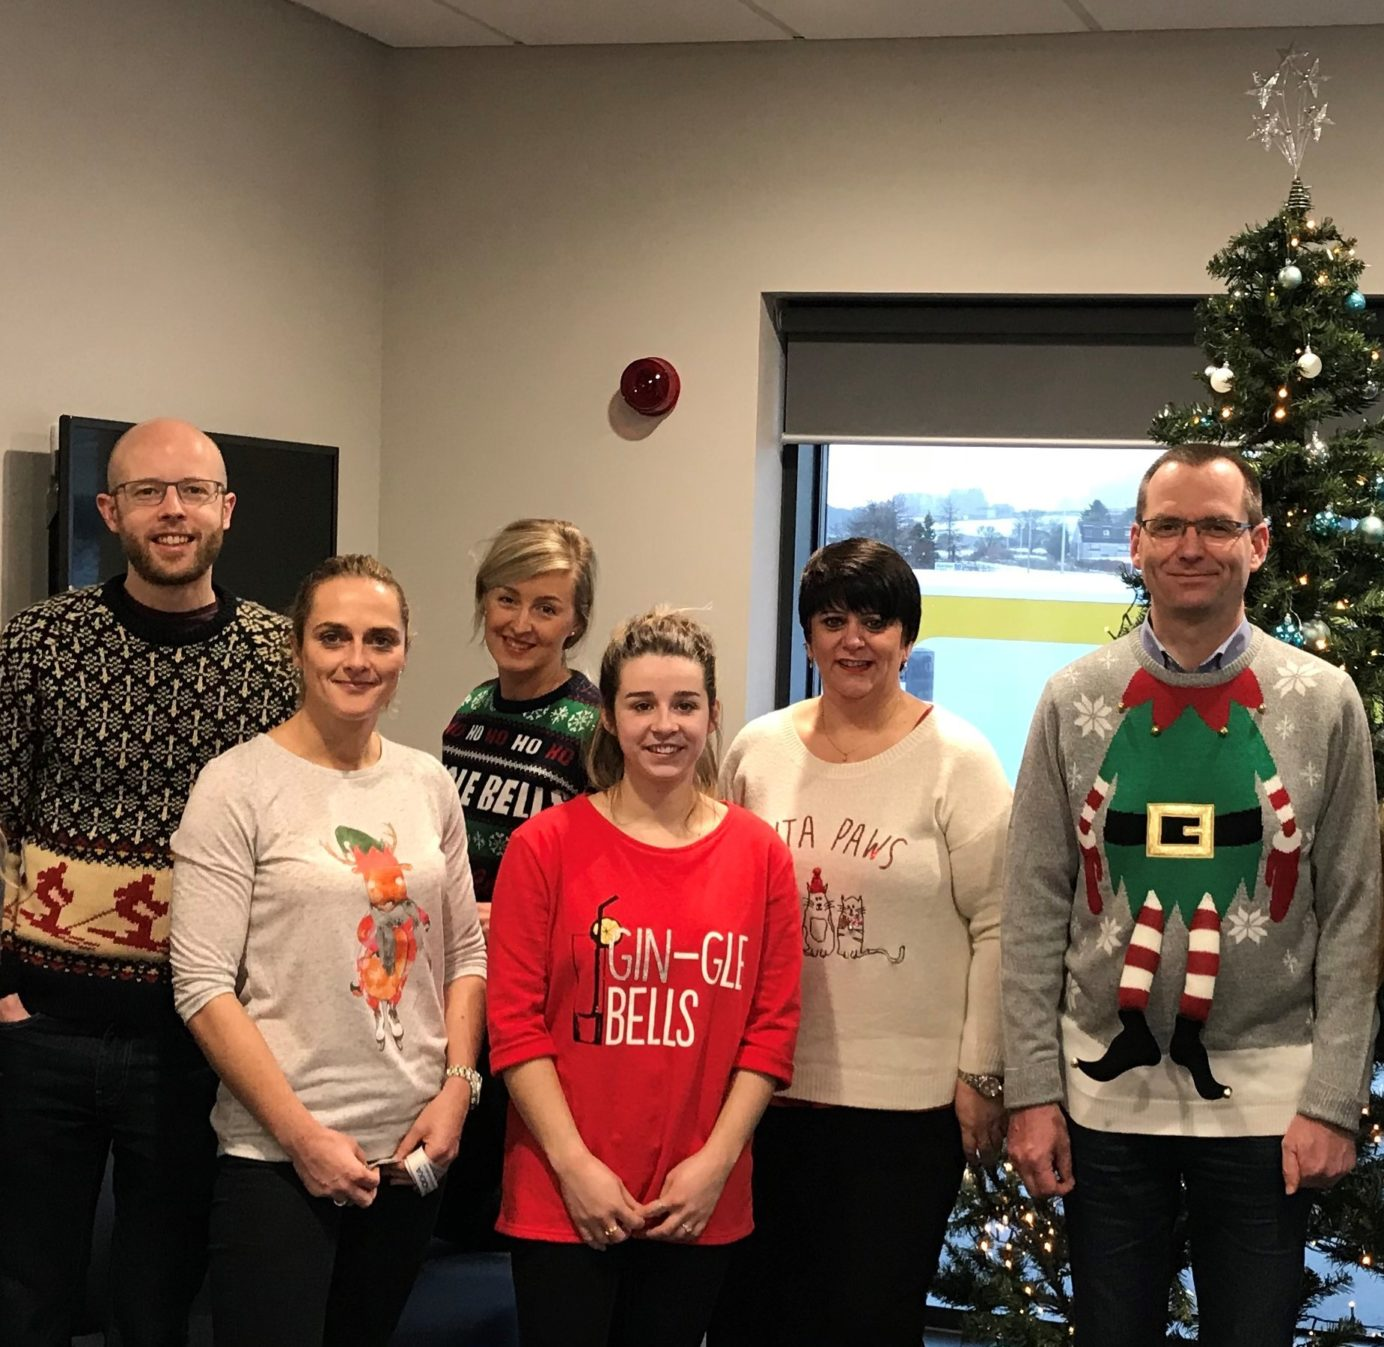 A team from Tendeka wearing Christmas Jumpers